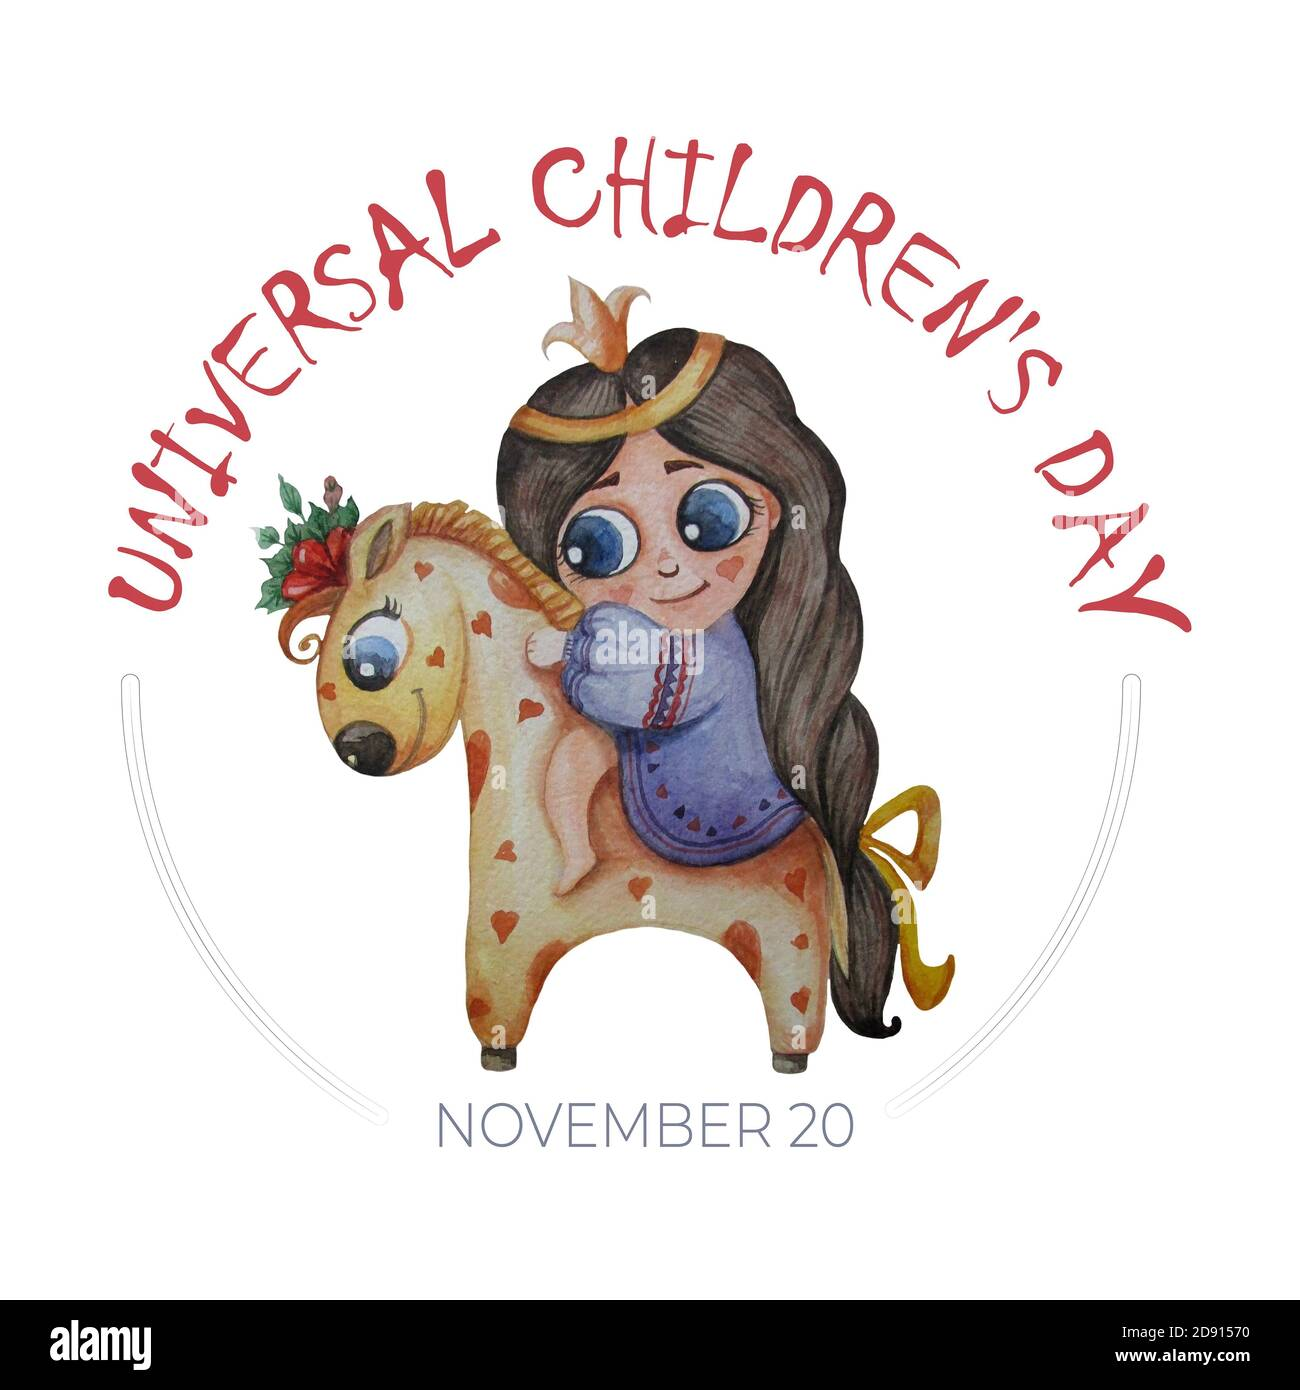 Universal Childrens Day Watercolor A Cute Princess With A Haircut And A Crown On A Beautiful Horse In Hearts And Flowers Hand Drawing On A White Stock Photo Alamy